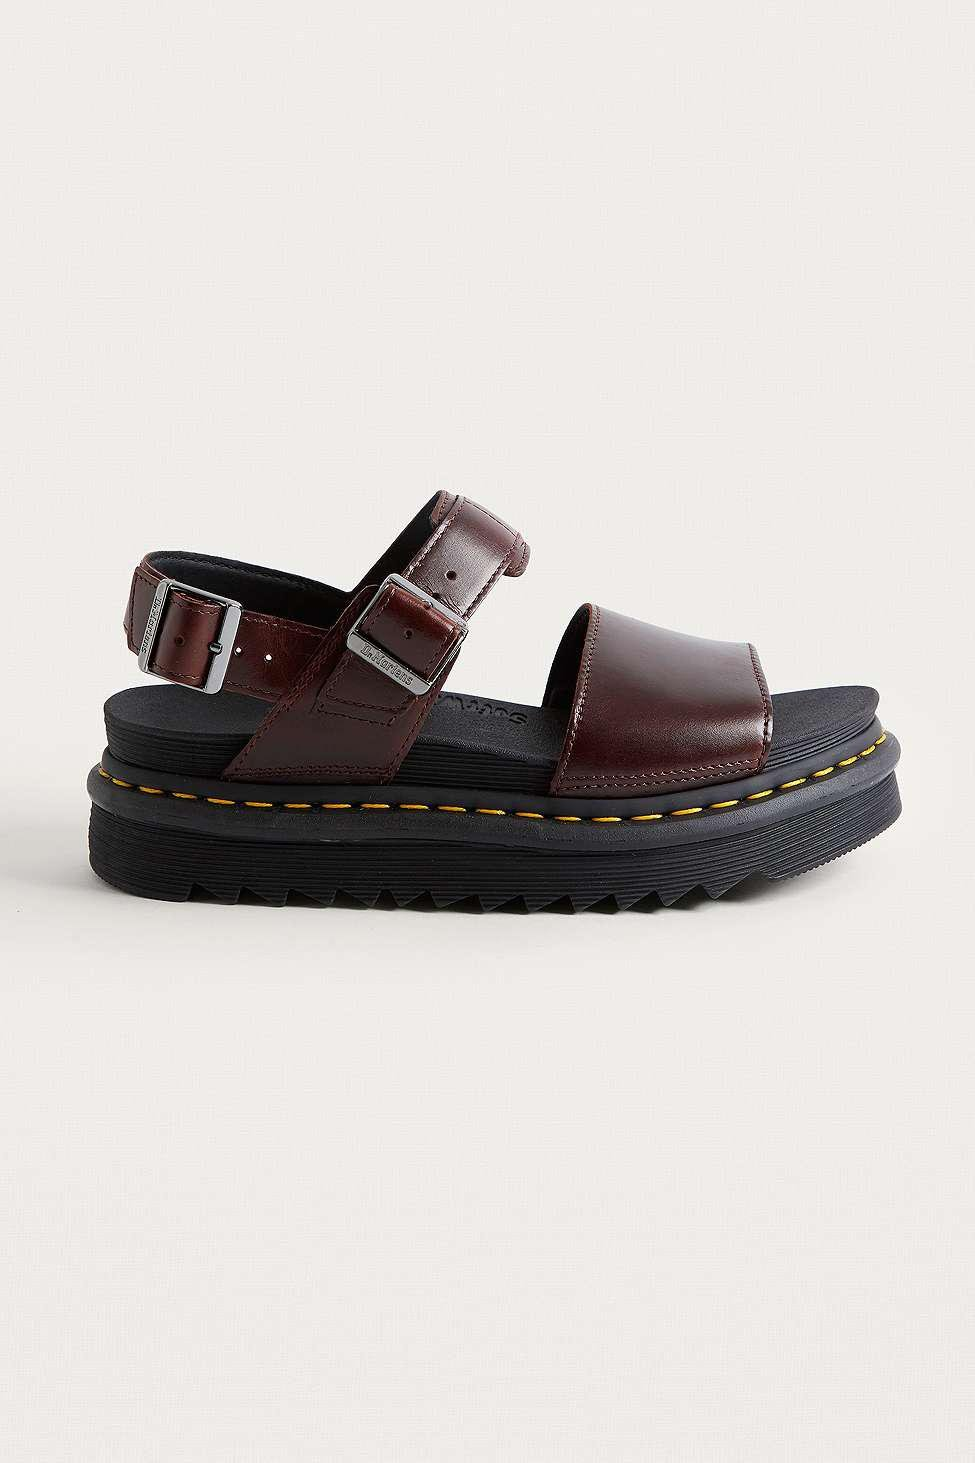 f029f8ea Dr. Martens Zebrilus Burgundy Sandals - Womens Uk 7 in Red - Lyst